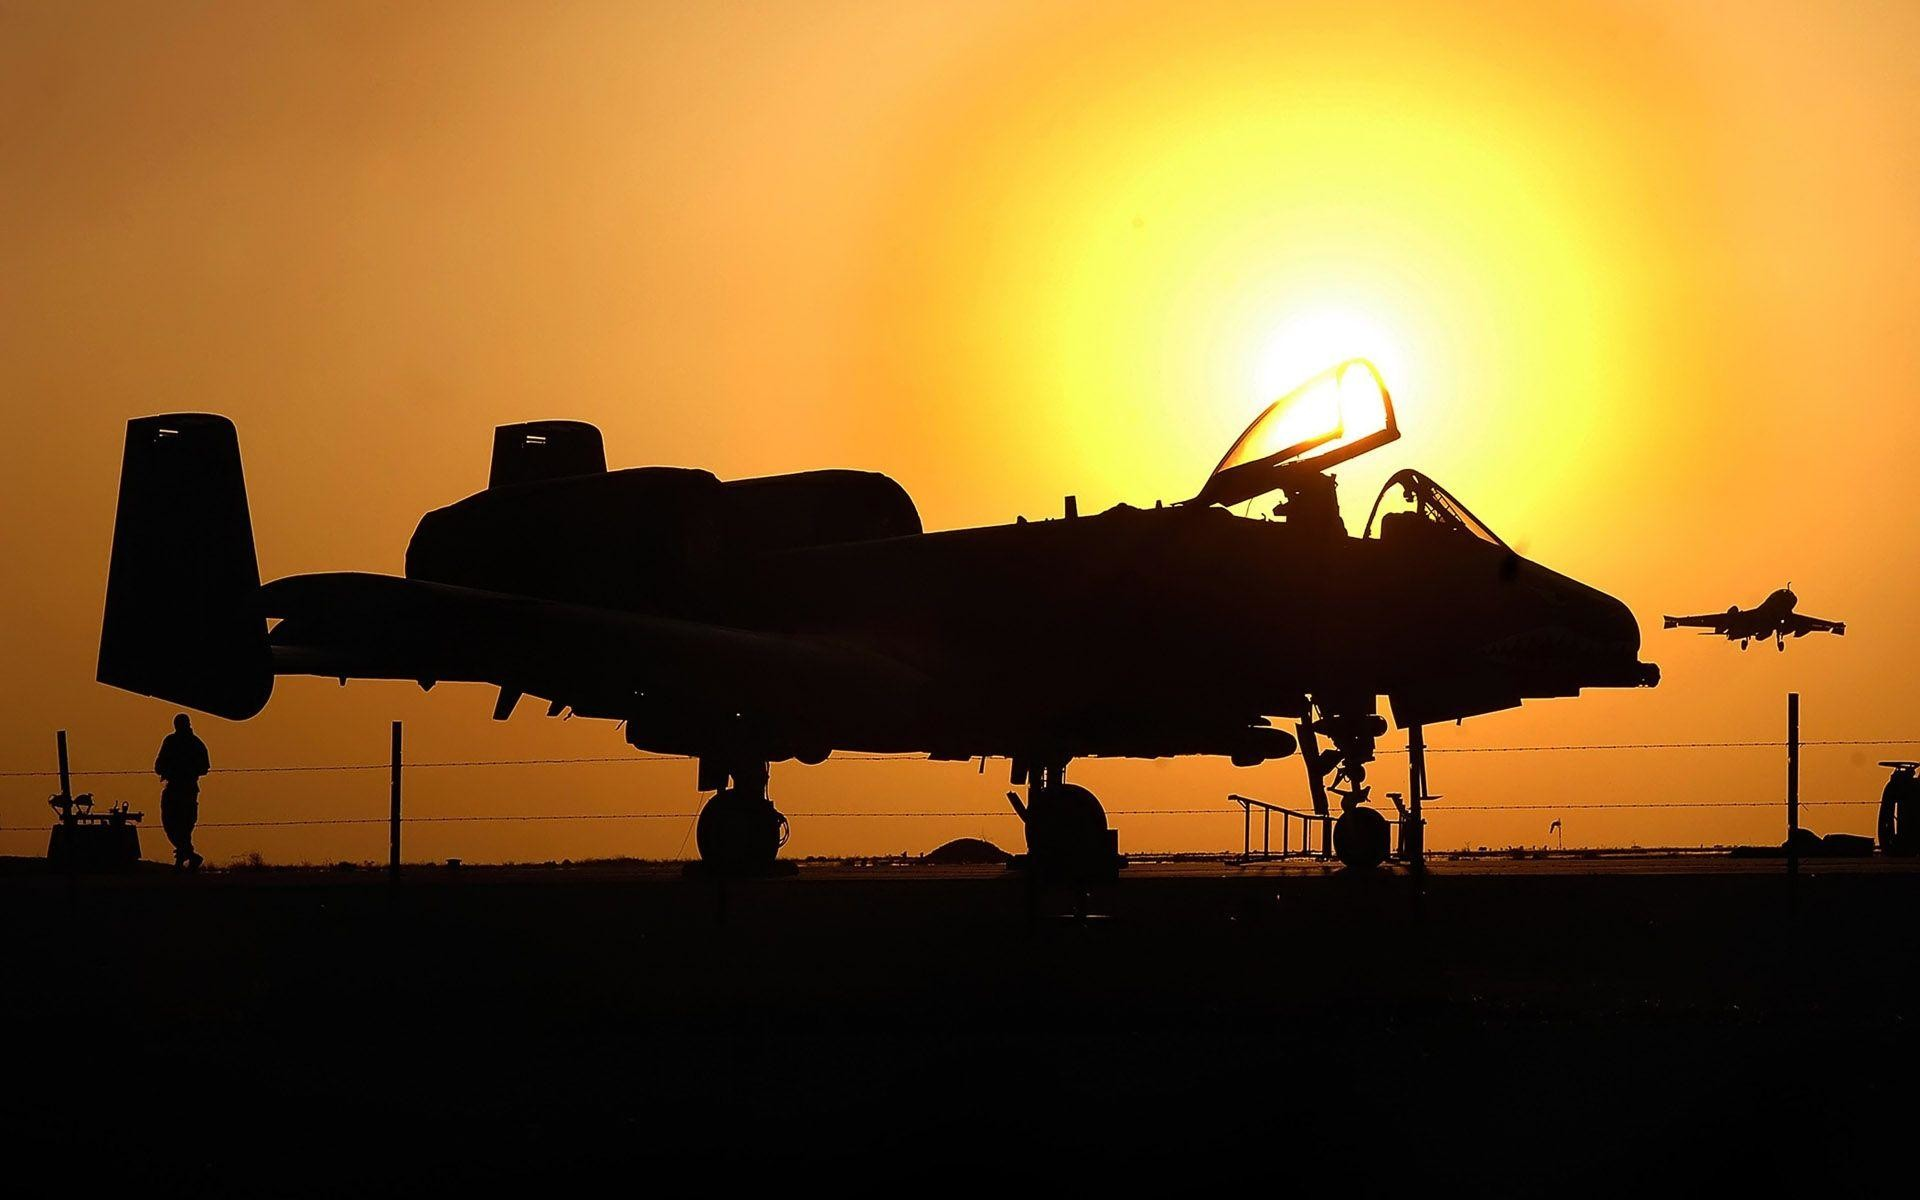 Maintenance Crews On A 10 Warthog Wallpapers | HD Wallpapers